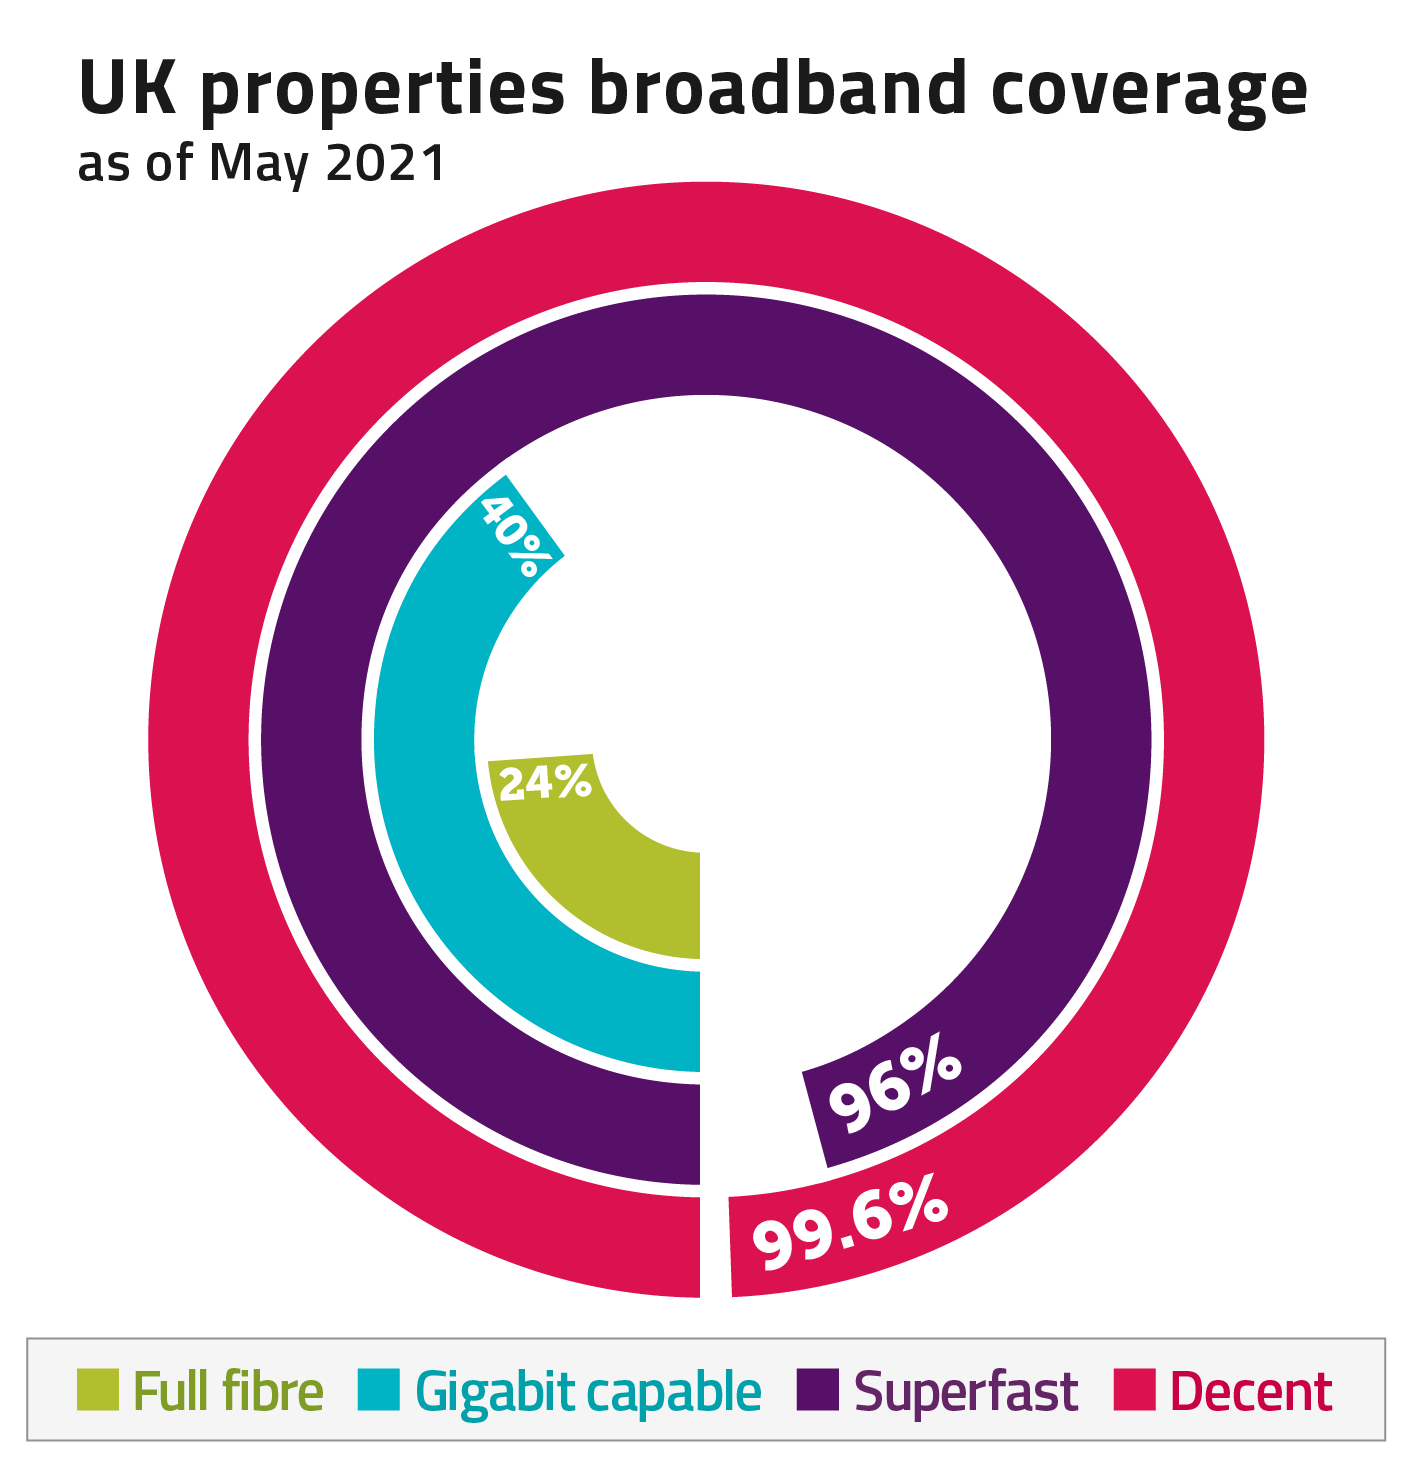 As of May 2021, 99.6% of UK properties have decent broadband coverage, 96% to superfast broadband, 40% to gigabit capable and 24% to full fibre broadband.